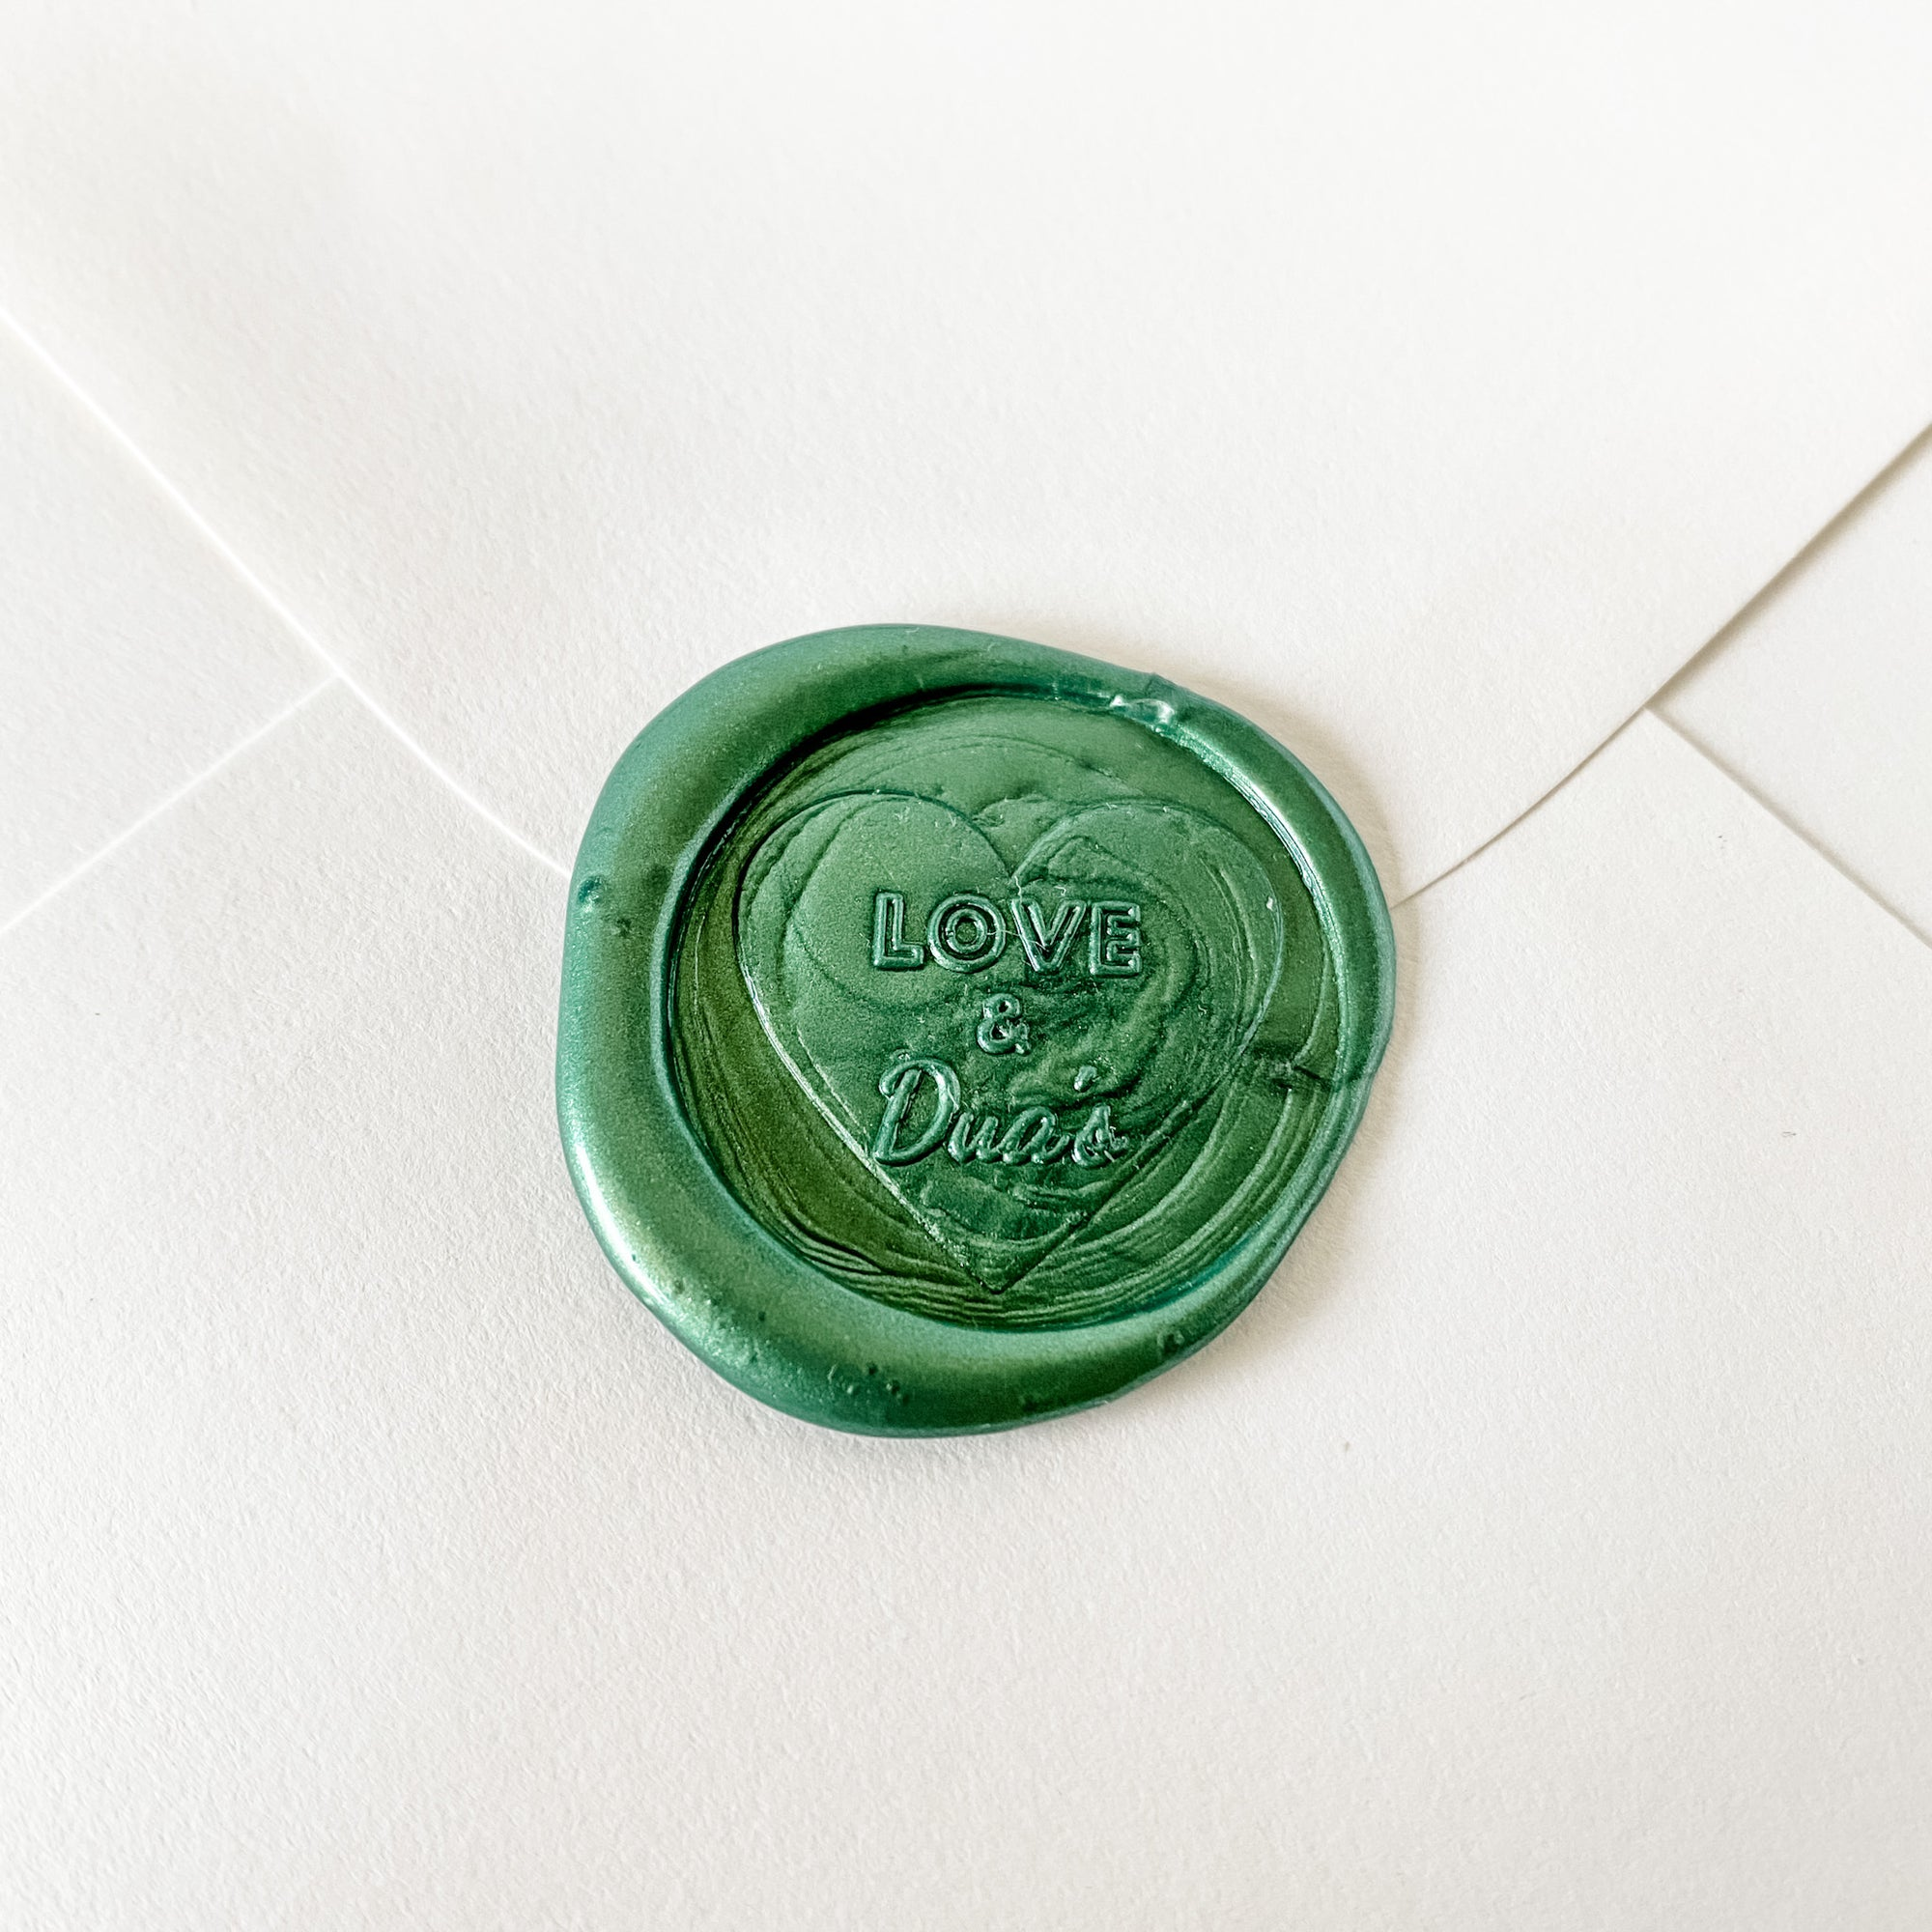 Love & Dua's Wax Seal Stamp